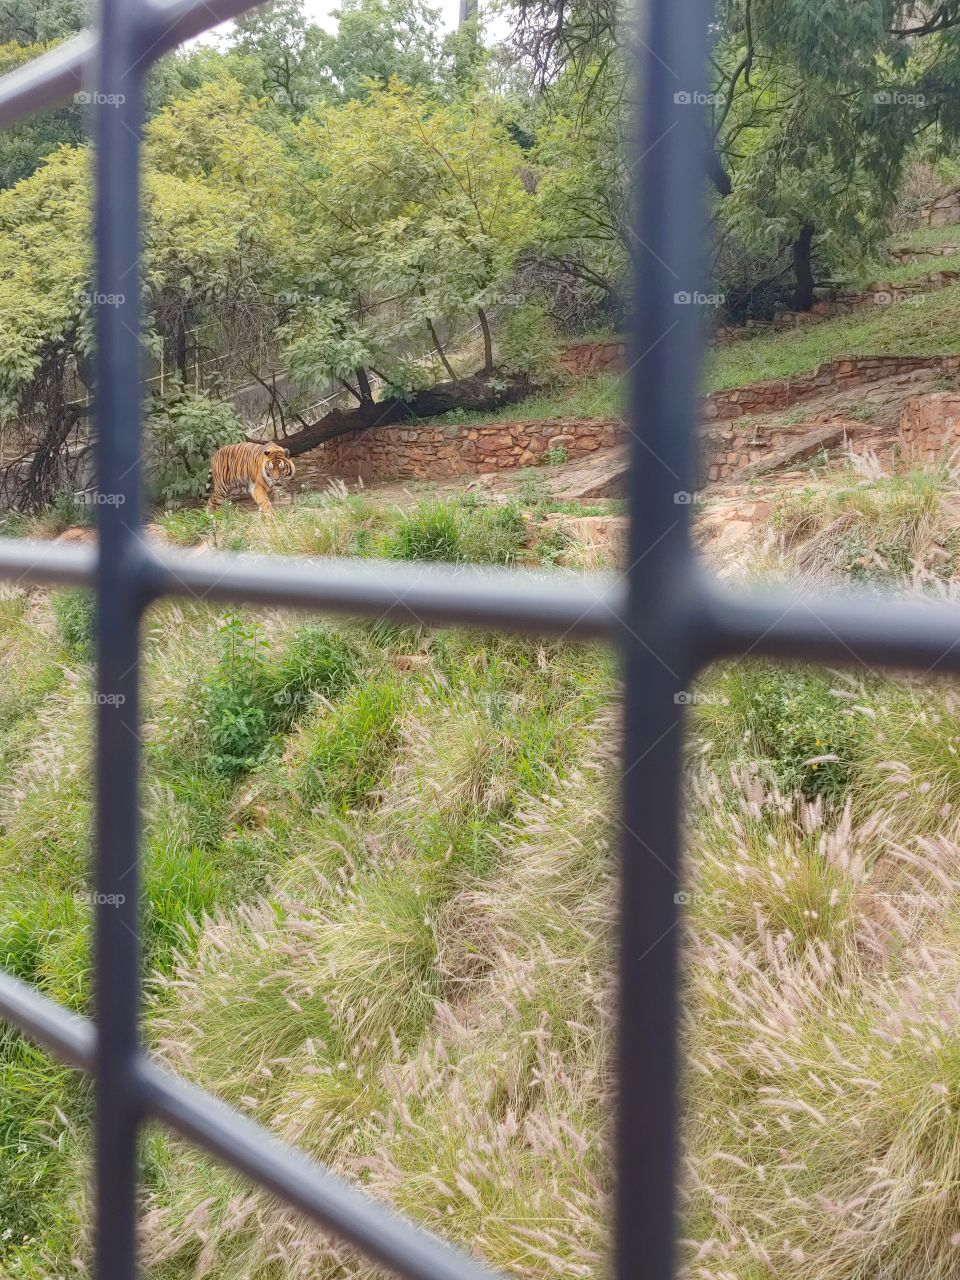 Through a cage, a frustrated tiger can be seen, walking along the only space he has got.